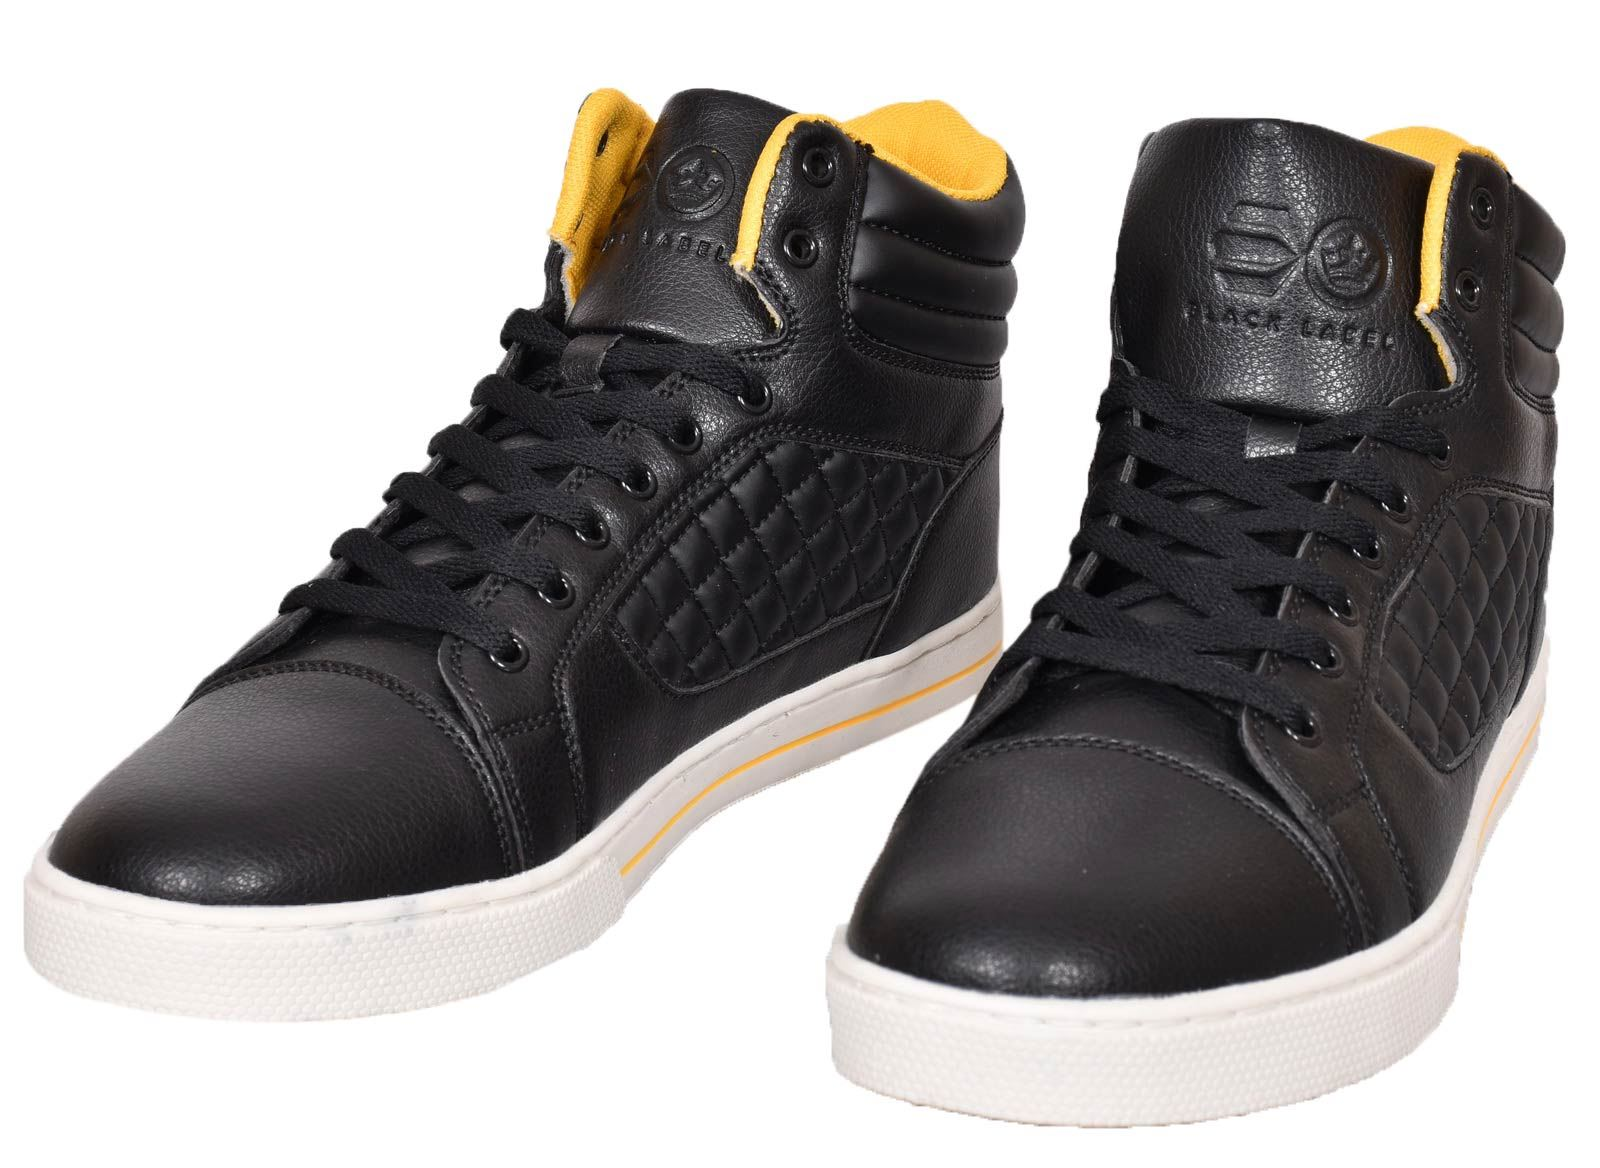 Mens-Trainers-Lace-up-Crosshatch-High-Tops-Ankle-Padded-Shoes-New-UK-Sizes-7-12 thumbnail 3